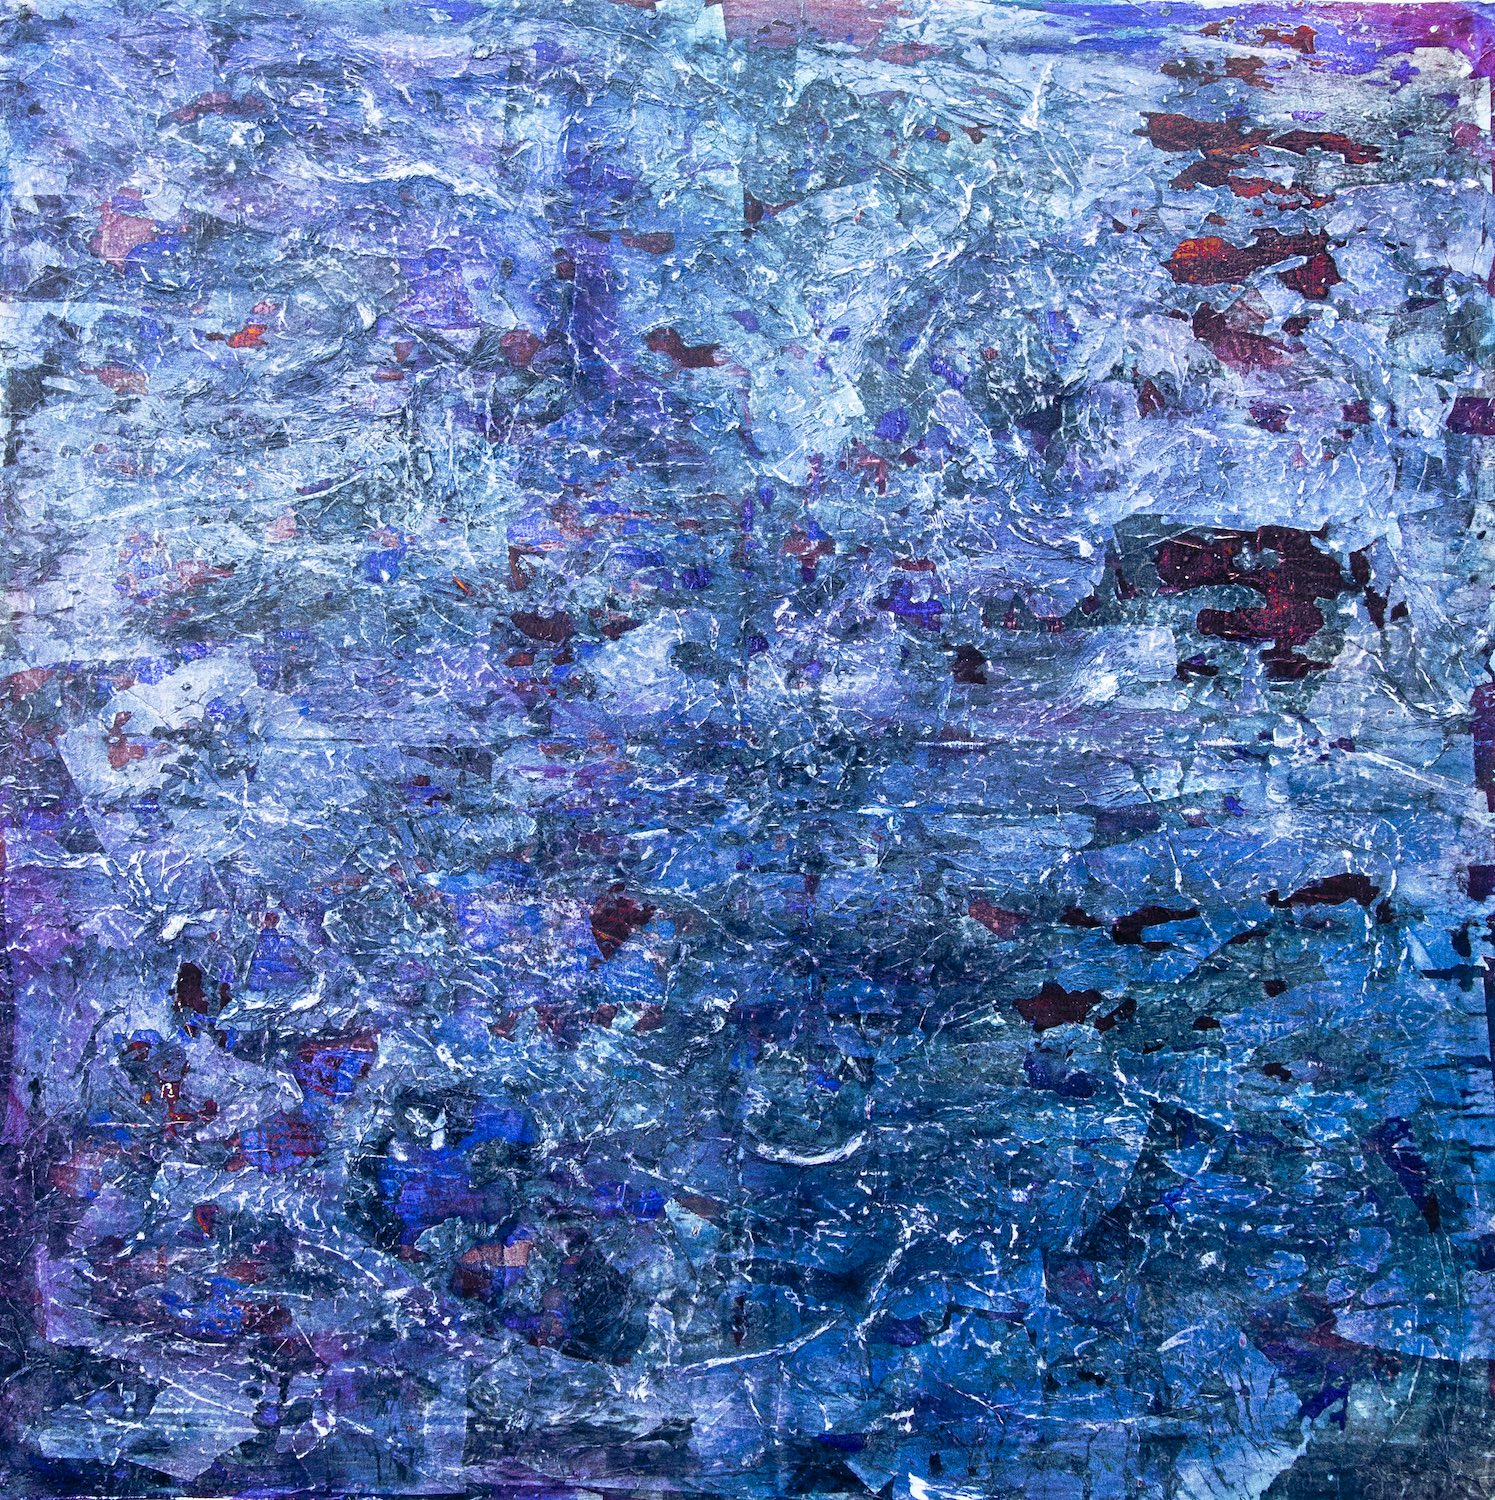 Blue White and Purple jagged painting